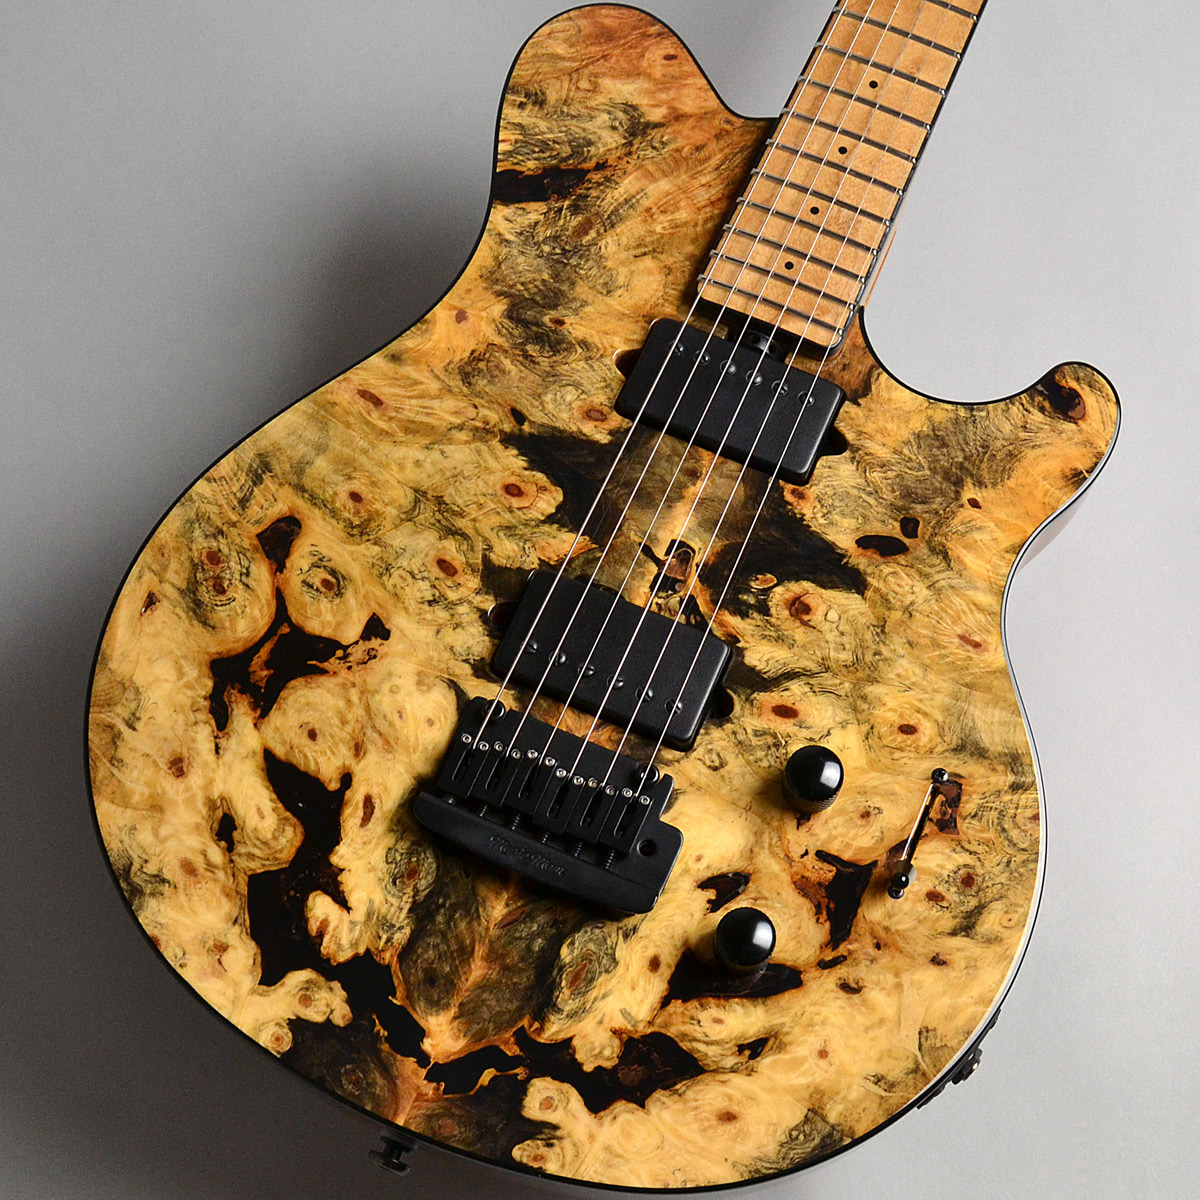 MUSICMAN BFR Axis Super Sport Buckeye Burl Limited S/N:G81923 【ミュージックマン】【新宿PePe店】【限定・国内2本のみ入荷】